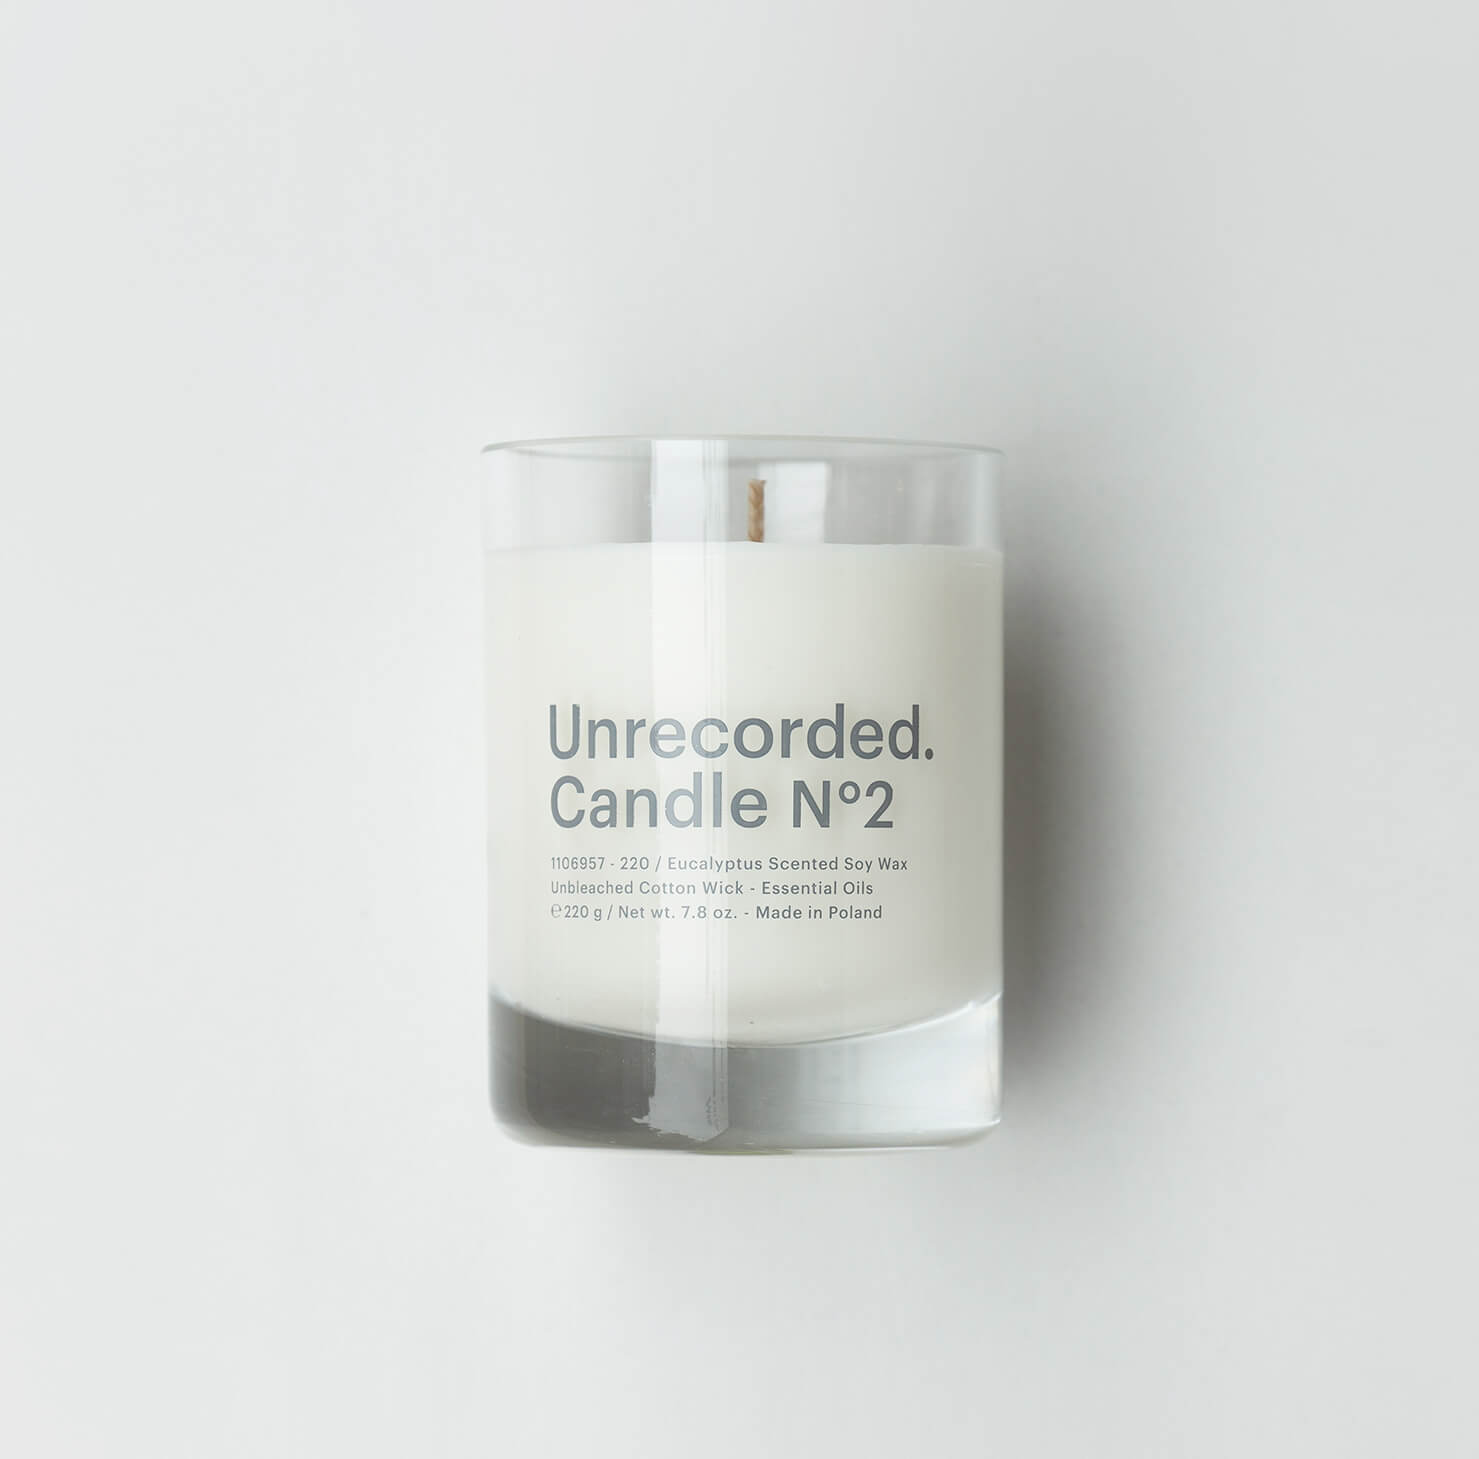 Candle N°2 / Eucalyptus - Unrecorded